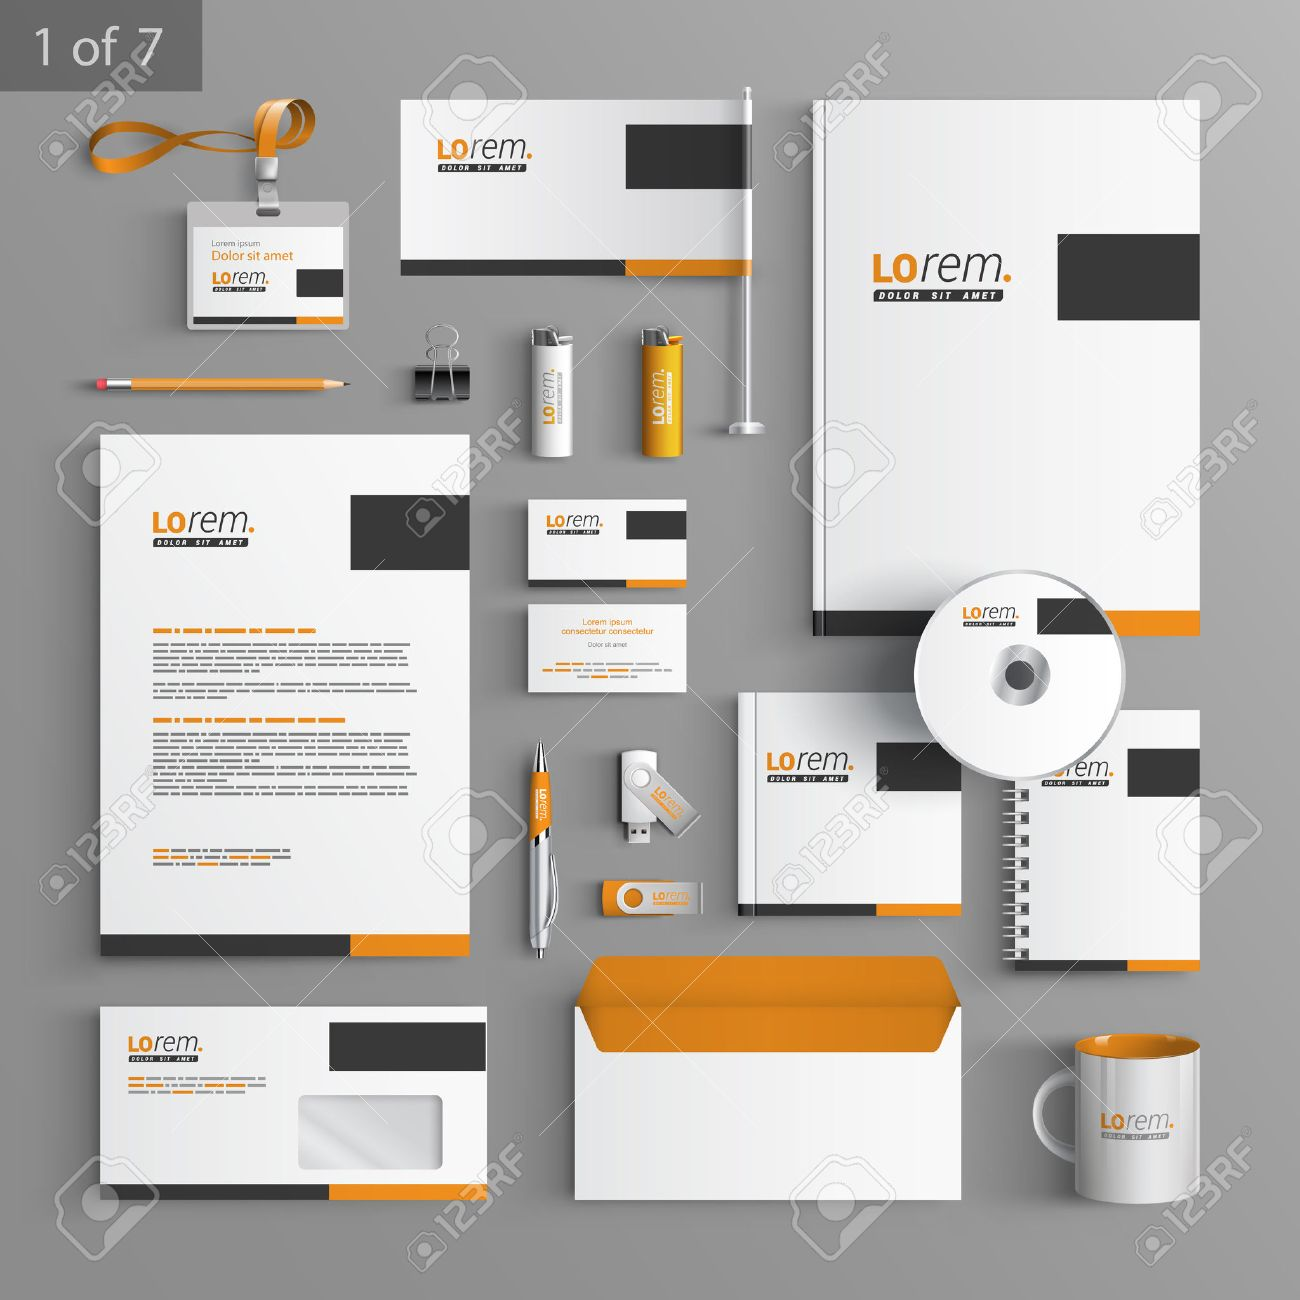 classic stationery template design with black and orange square